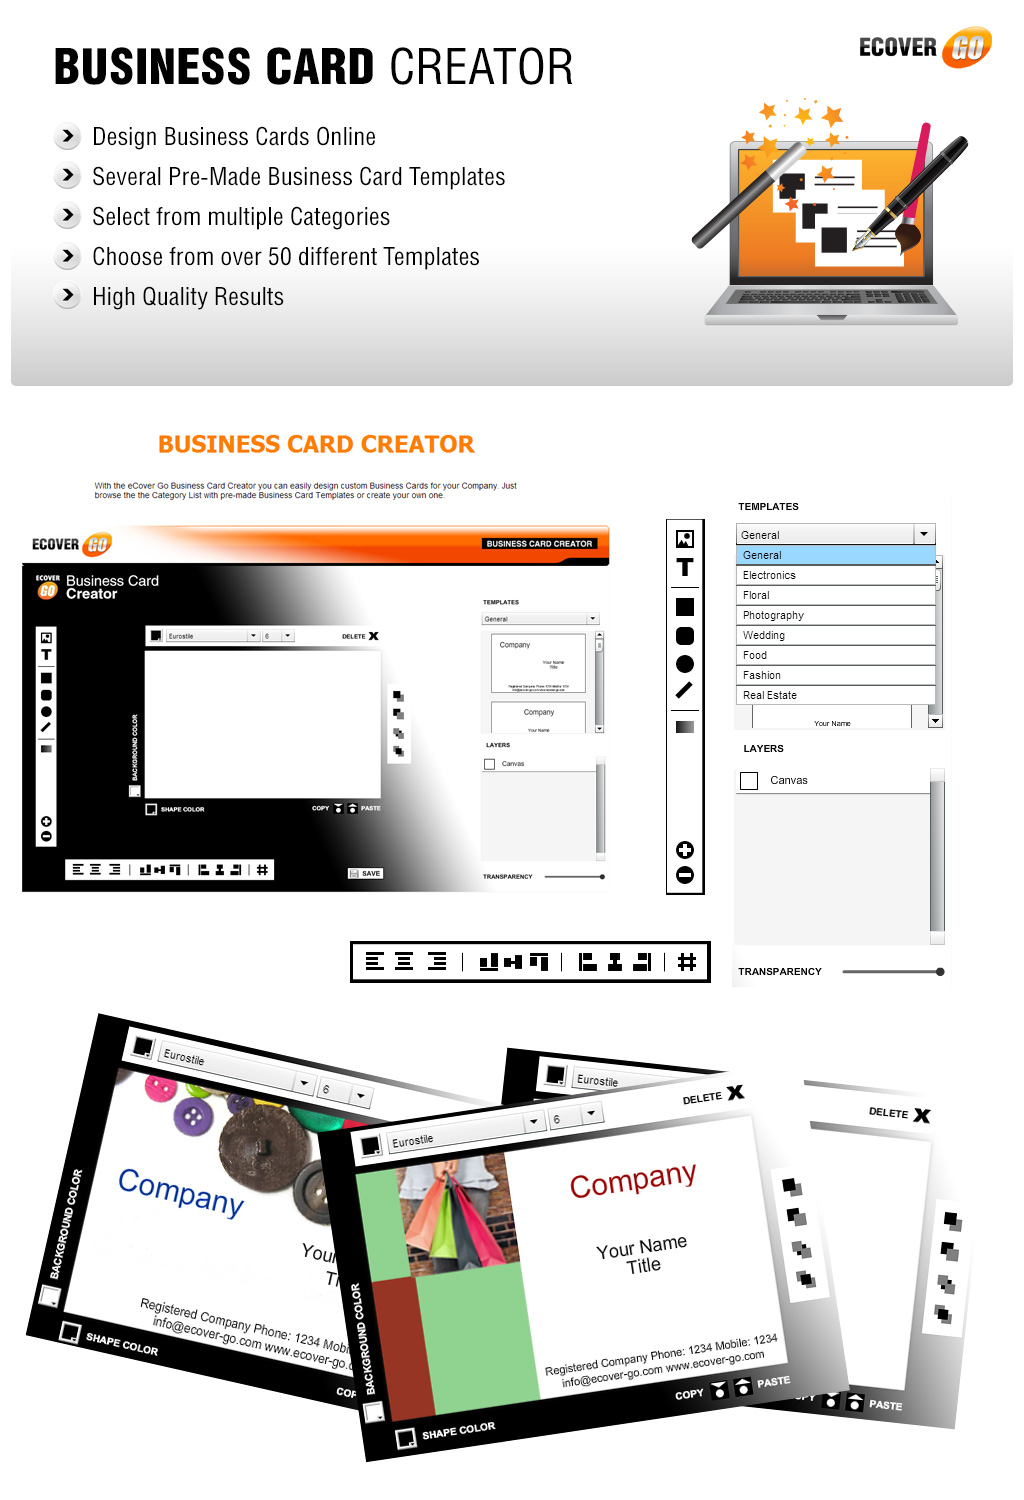 Business Card Creator - eCover Go - Online Graphics Suite